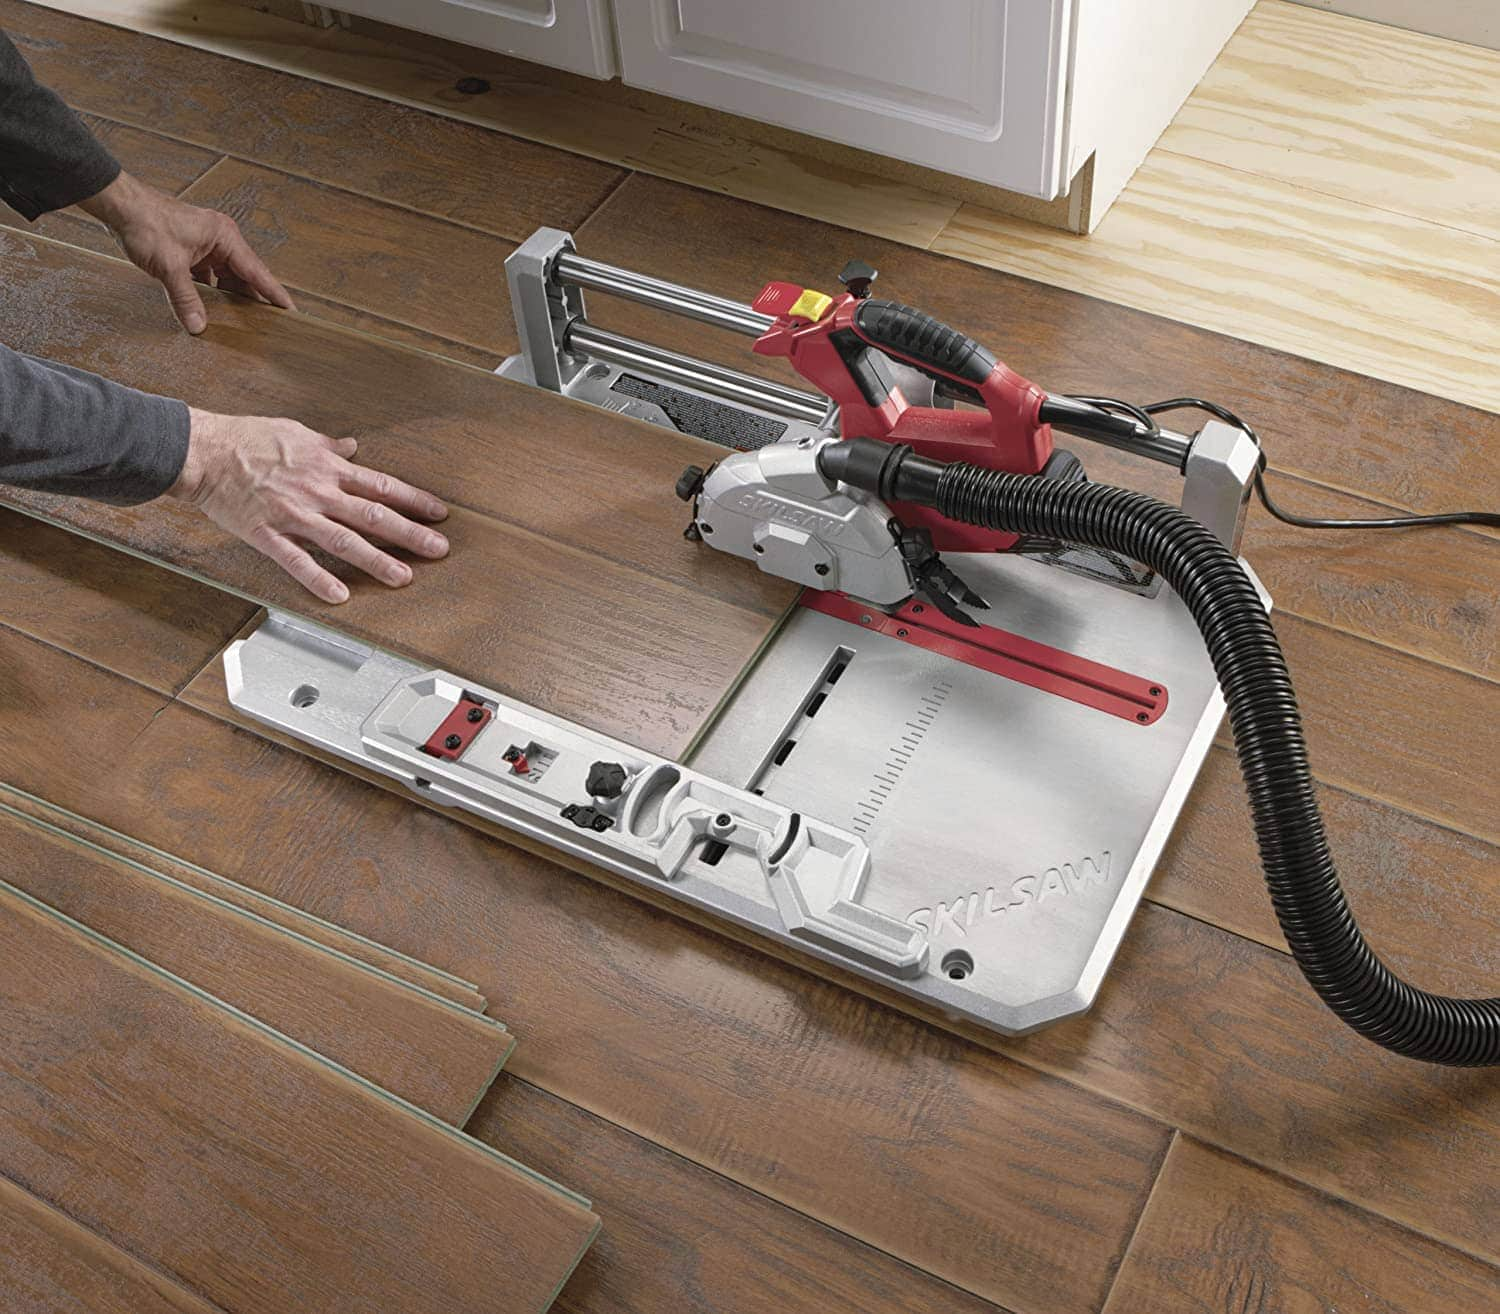 8 Best Laminate Floor Cutters Of 2021, What Kind Of Saw To Cut Laminate Wood Flooring